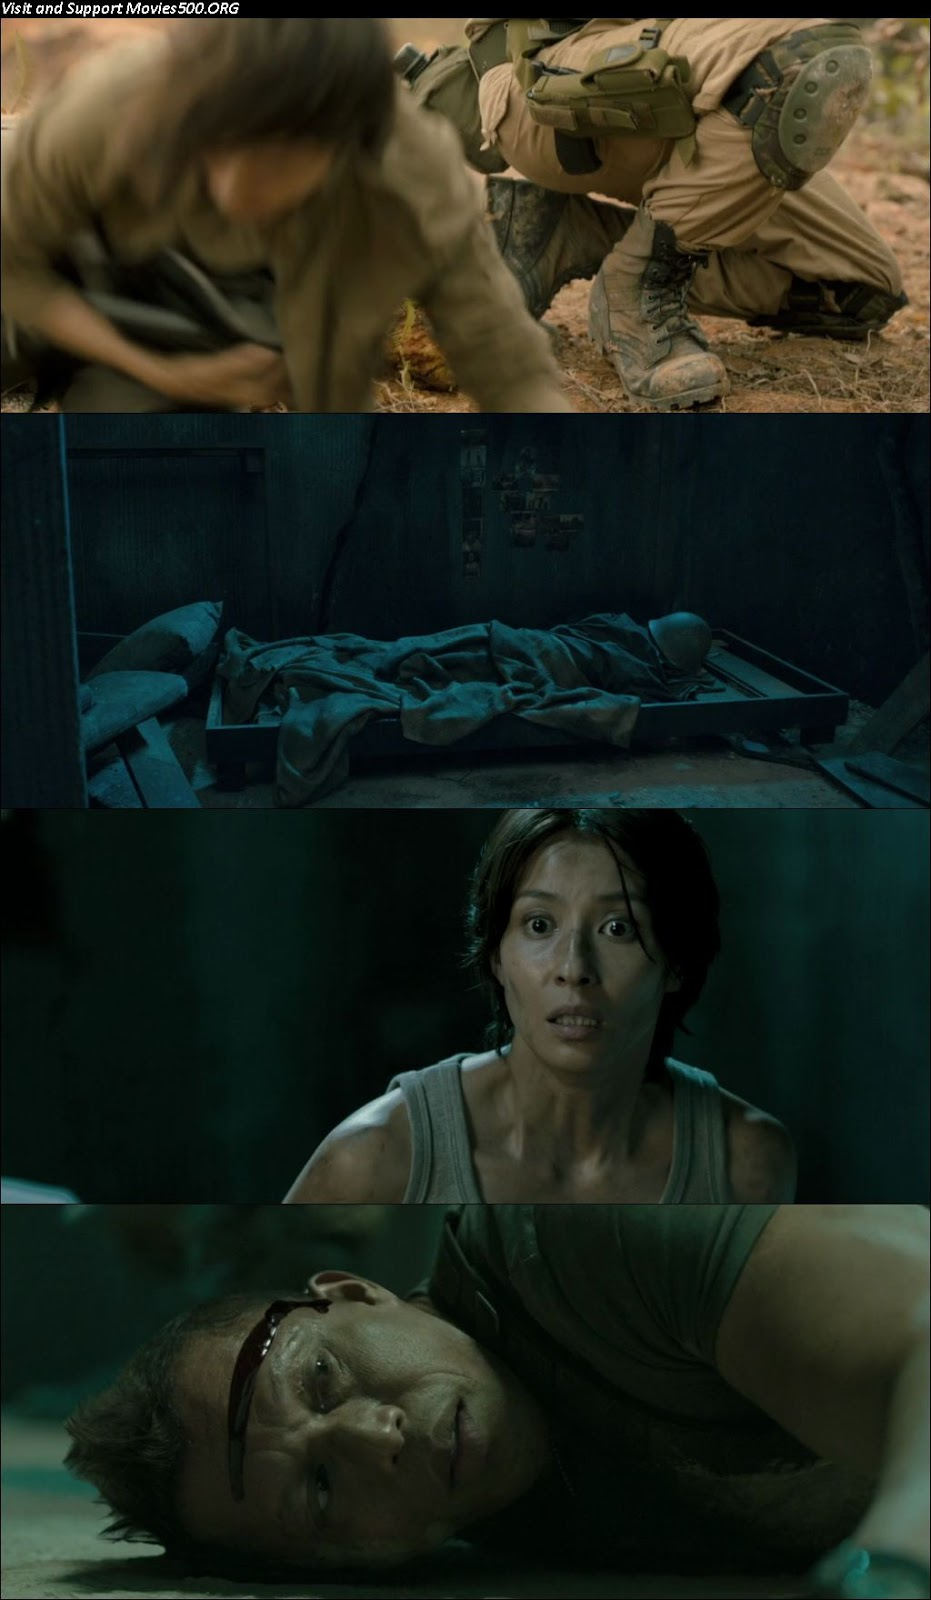 Dead Mine 2012 Dual Audio Hindi Download BluRay 720P at xcharge.net